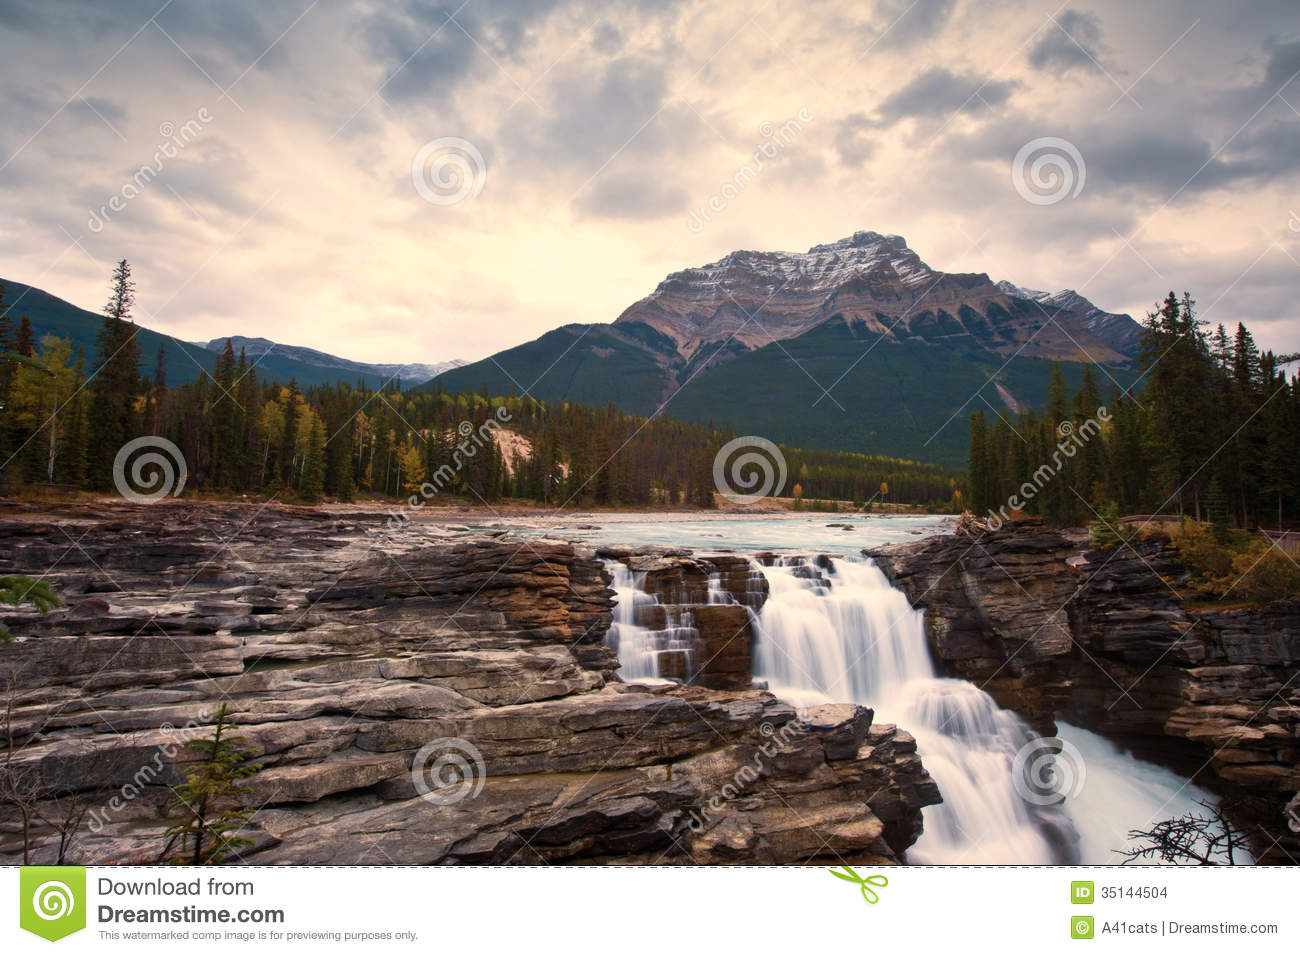 Athabasca Falls clipart #6, Download drawings